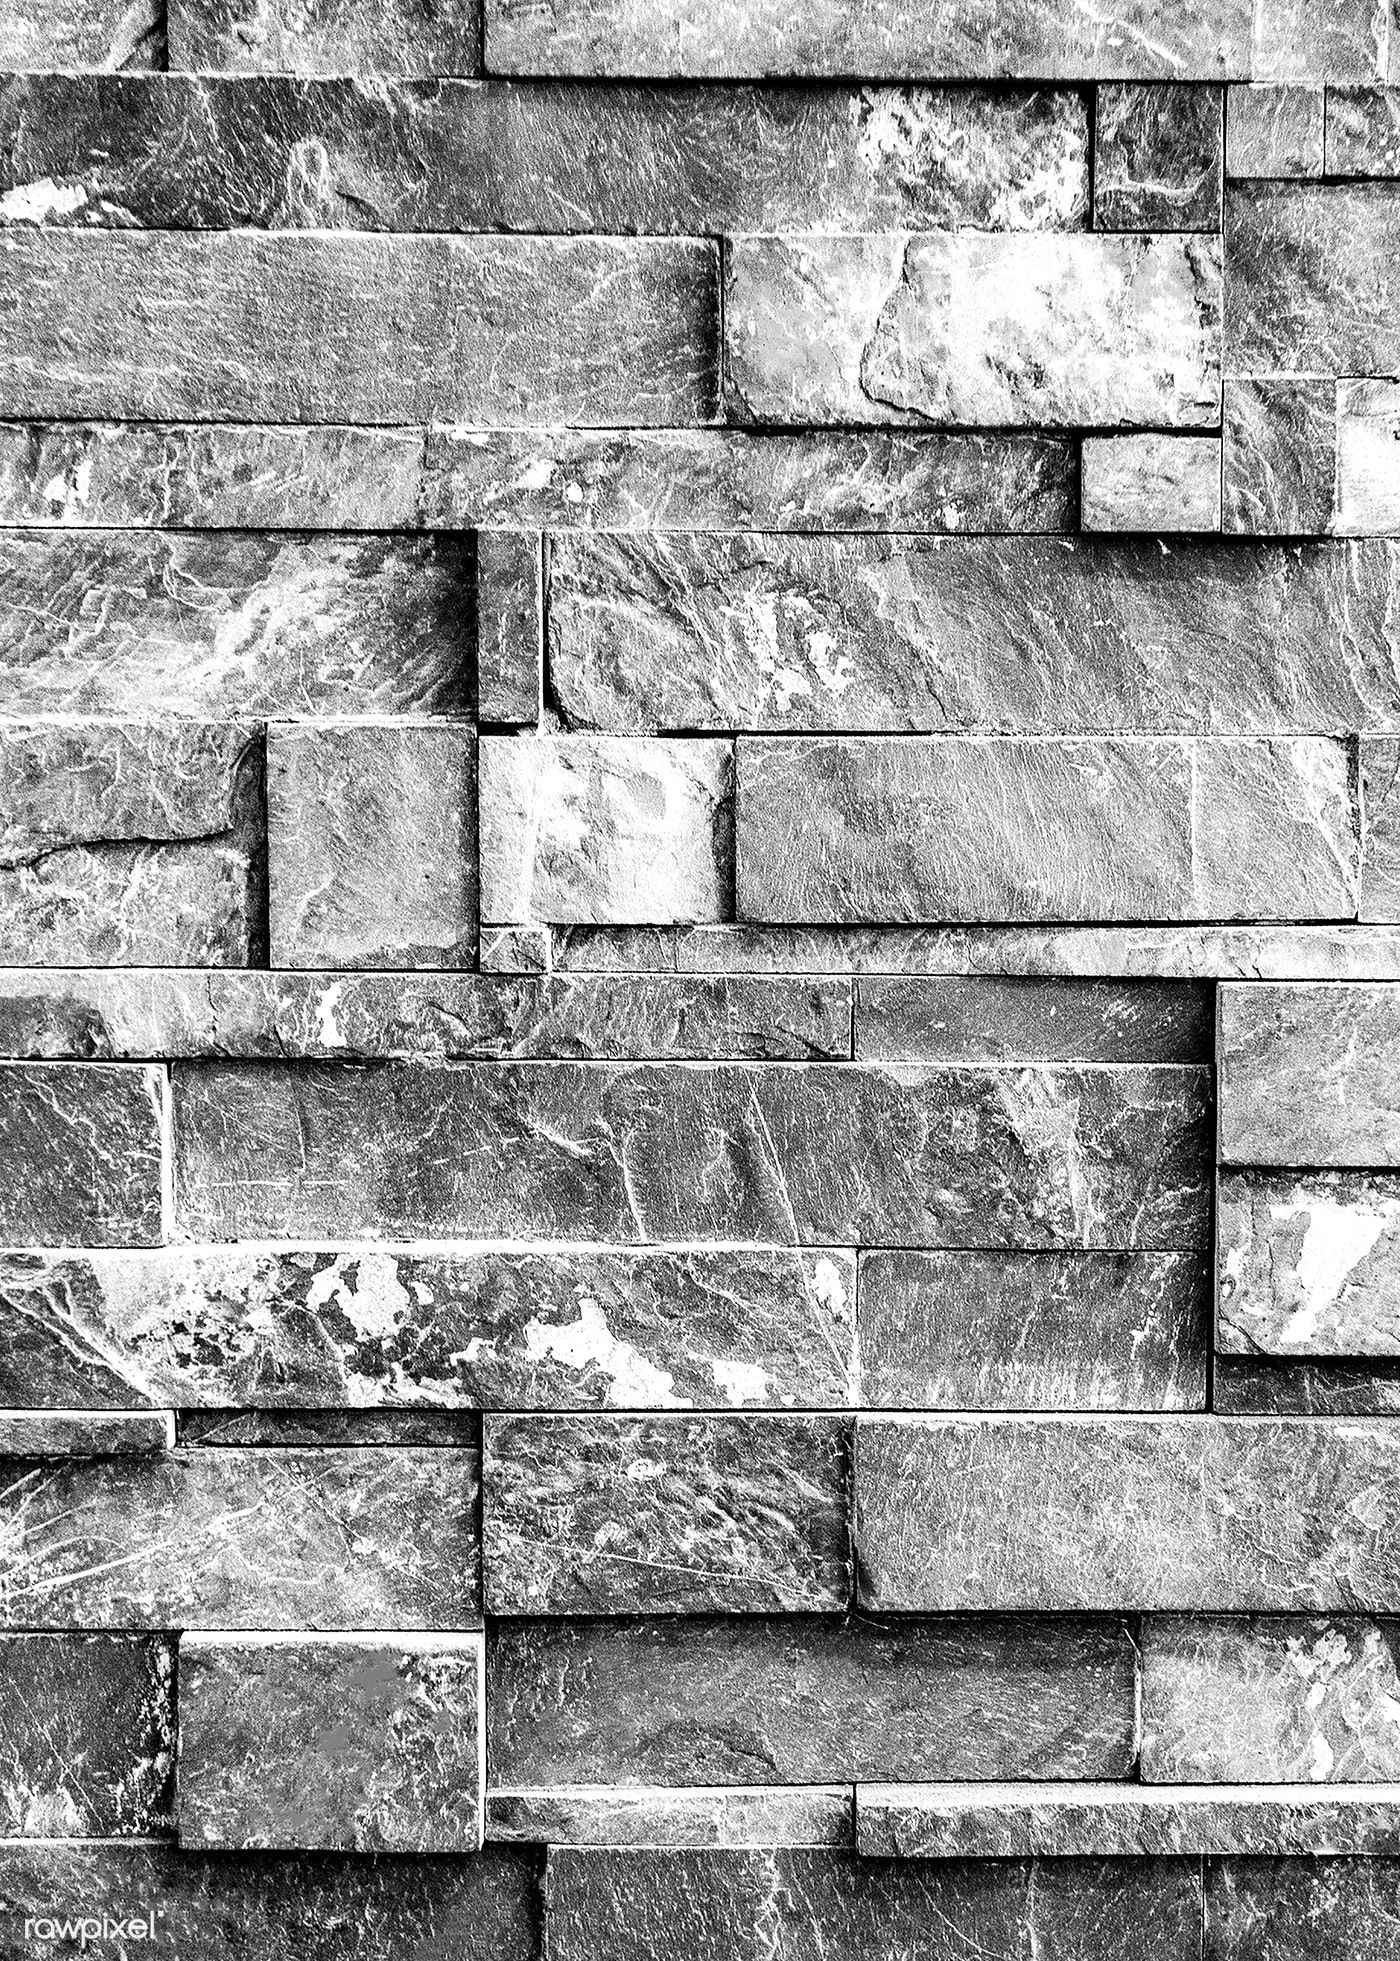 Gray slate wall textured backdrop free image by rawpixel